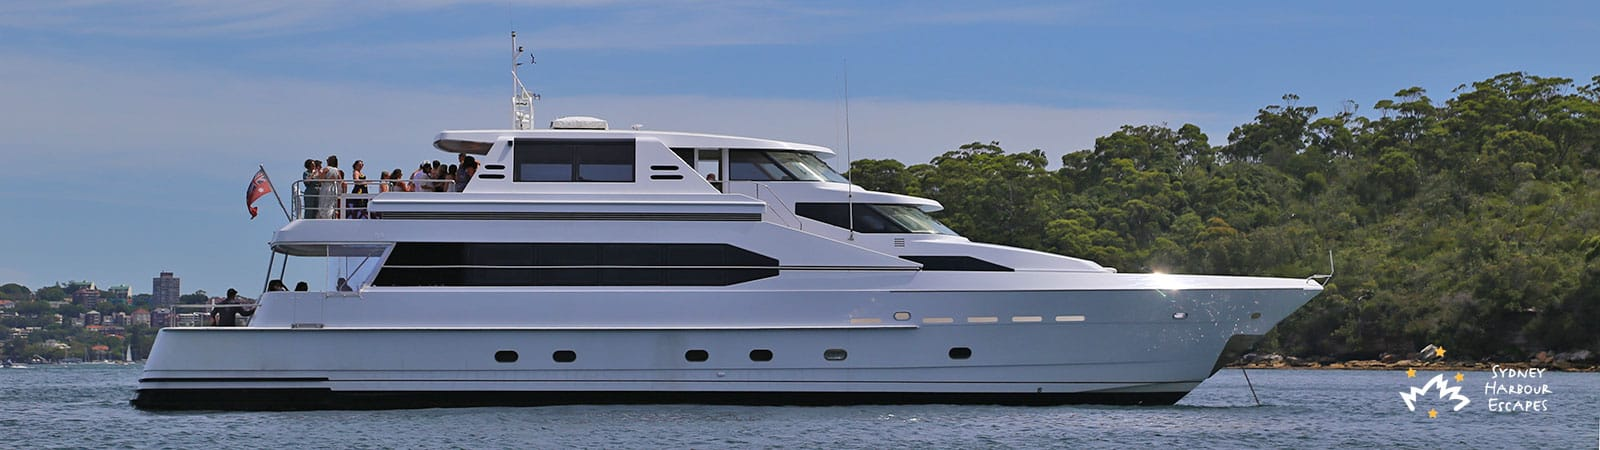 Aqa Boat Hire Luxury Super Yacht Charter Sydney Harbour